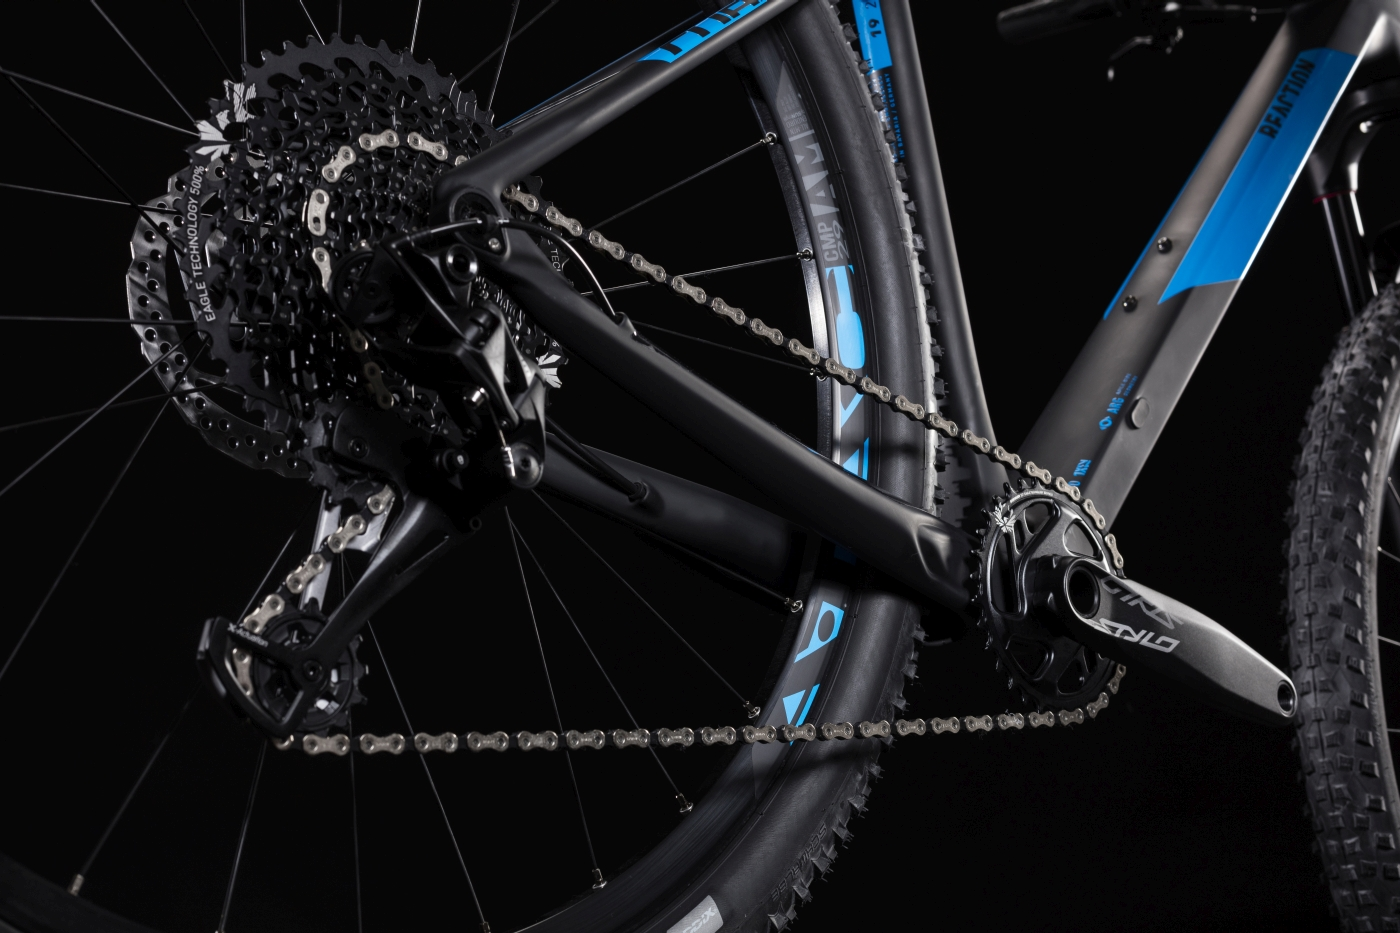 e44fbb53b5b For the 2019 CUBE Reaction C:62 Pro we began with our light, responsive and  agile carbon frameset. Then we added some of the best value, best  performing ...